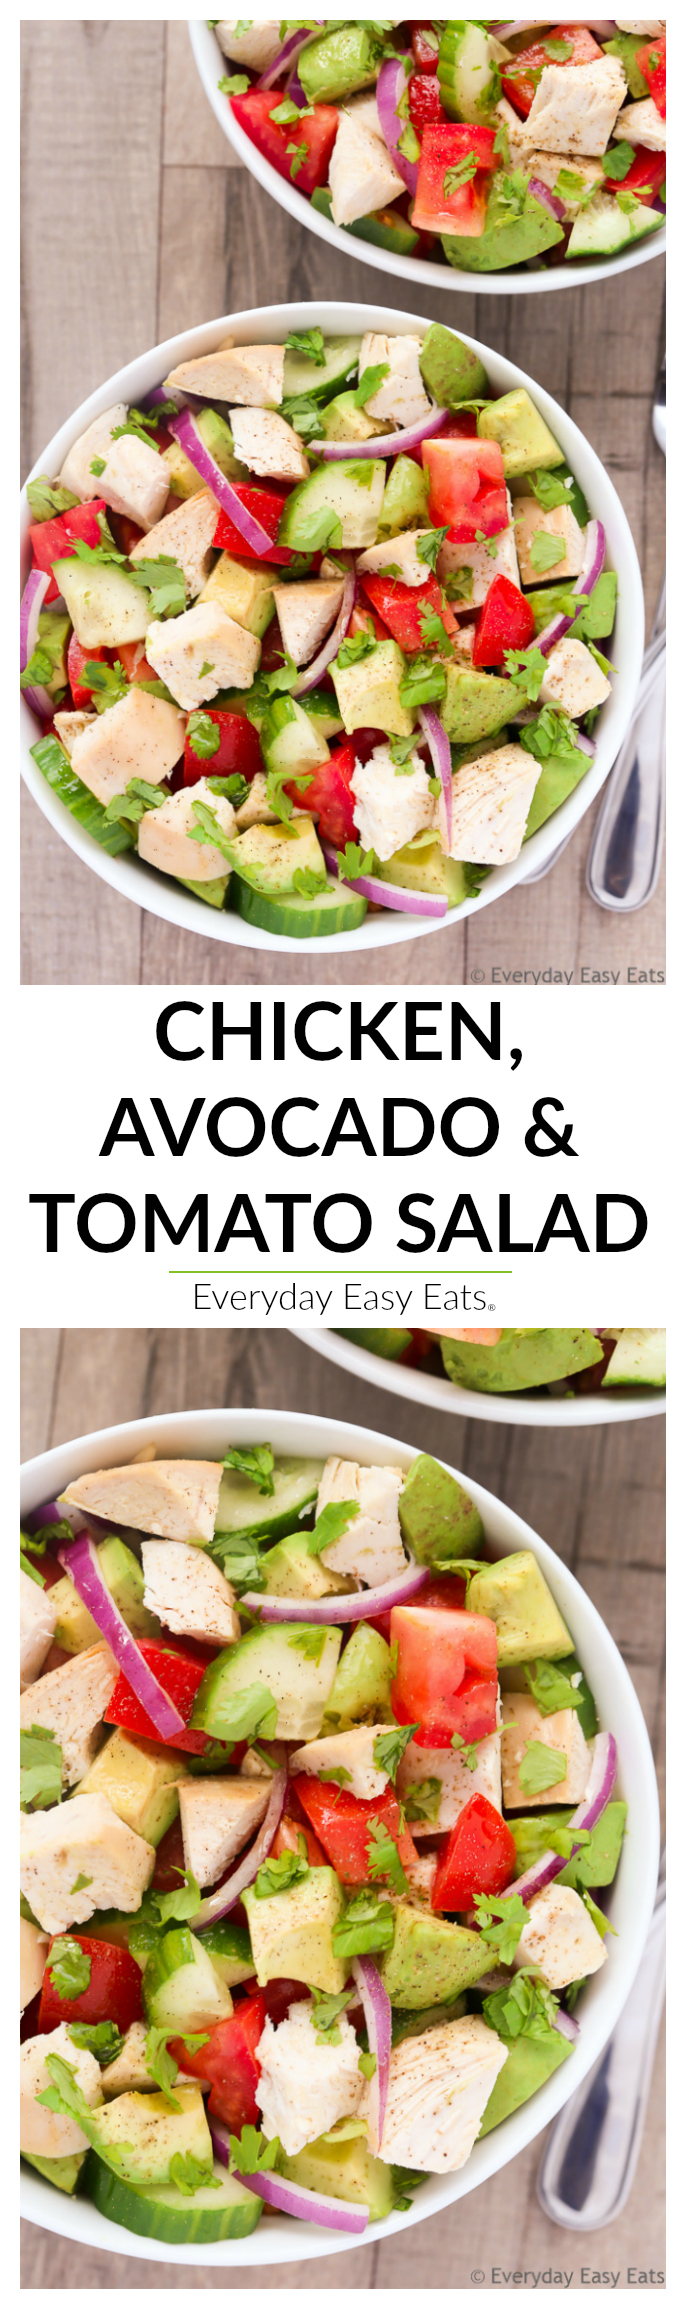 Chicken, Avocado and Tomato Salad - Healthy, easy-to-make and ready in 15 minutes! | Recipe at EverydayEasyEats.com